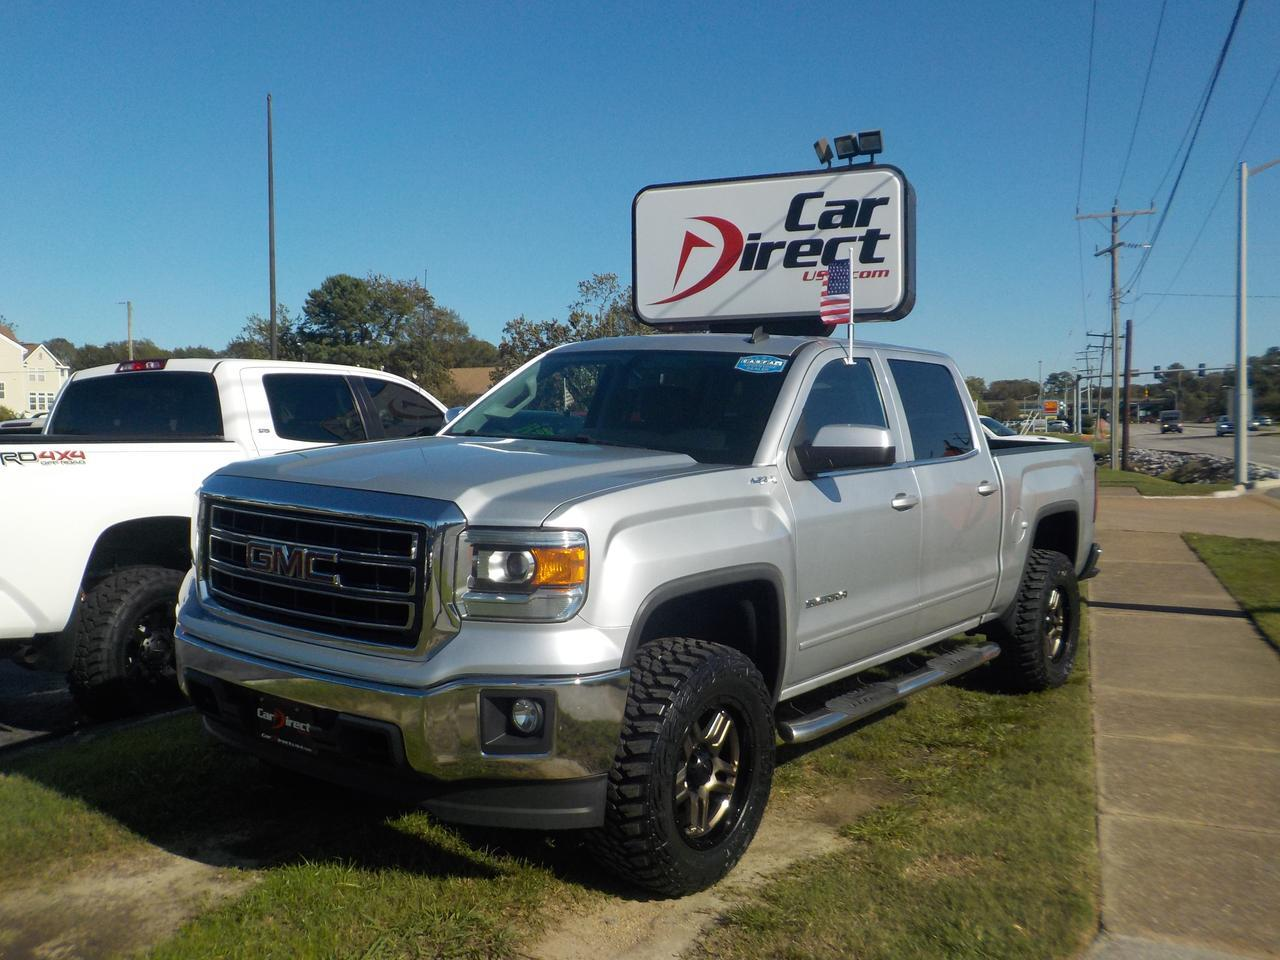 2014 GMC SIERRA 1500 SLE CREW CAB 4X4, RUNNING BOARDS, BED LINER, BACKUP CAM, PARKING SENSORS, TOW PACKAGE!